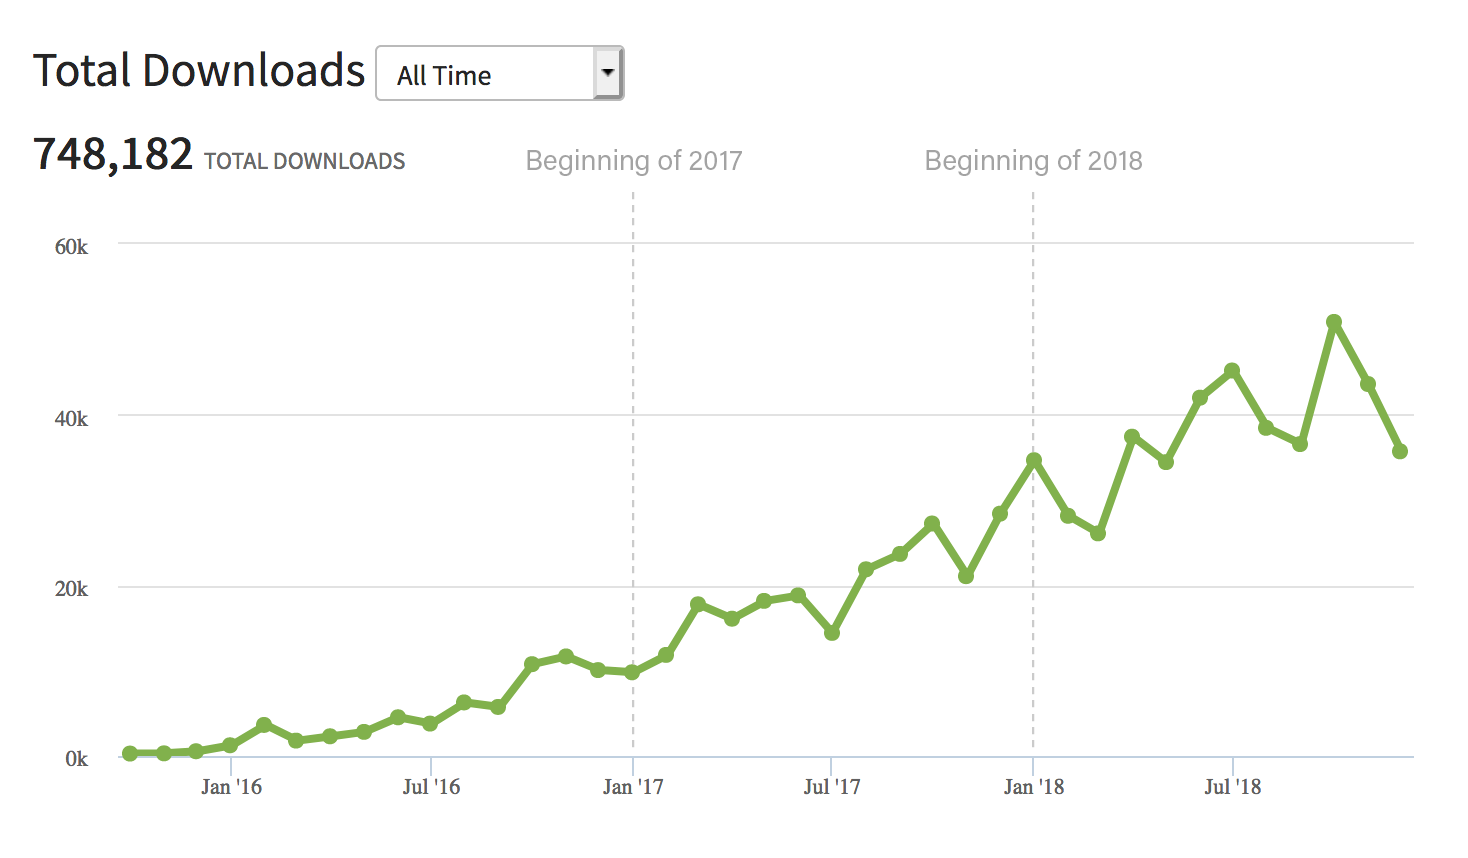 UI Breakfast Podcast downloads growth in 2018